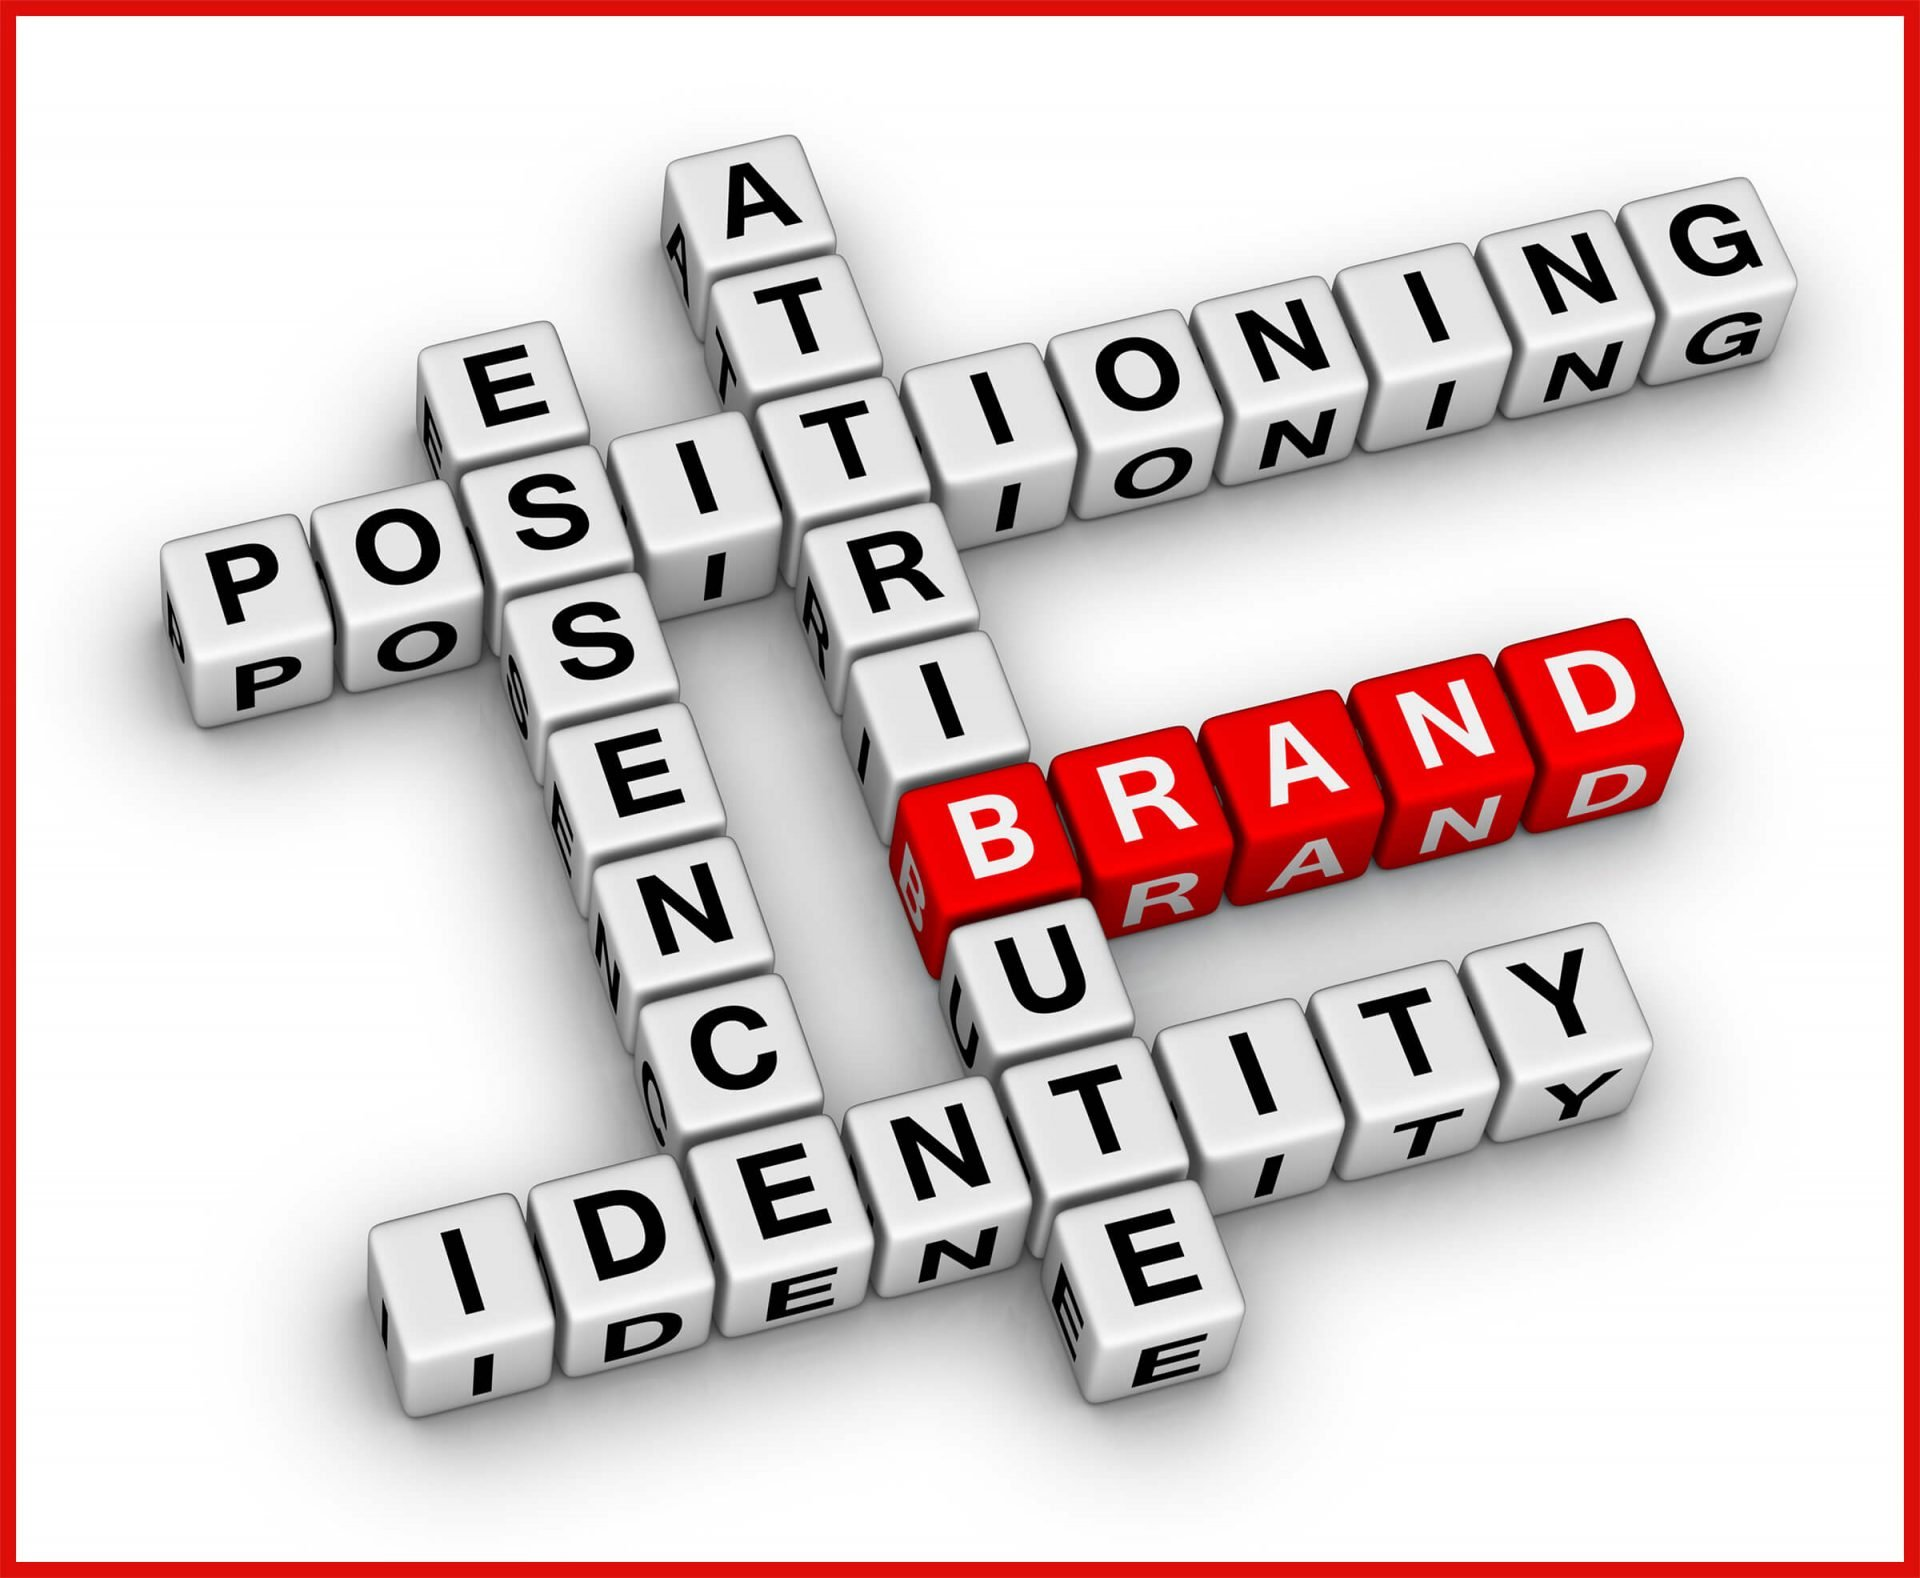 Brand Identity is Not Brand Image | MasterPositioning.com